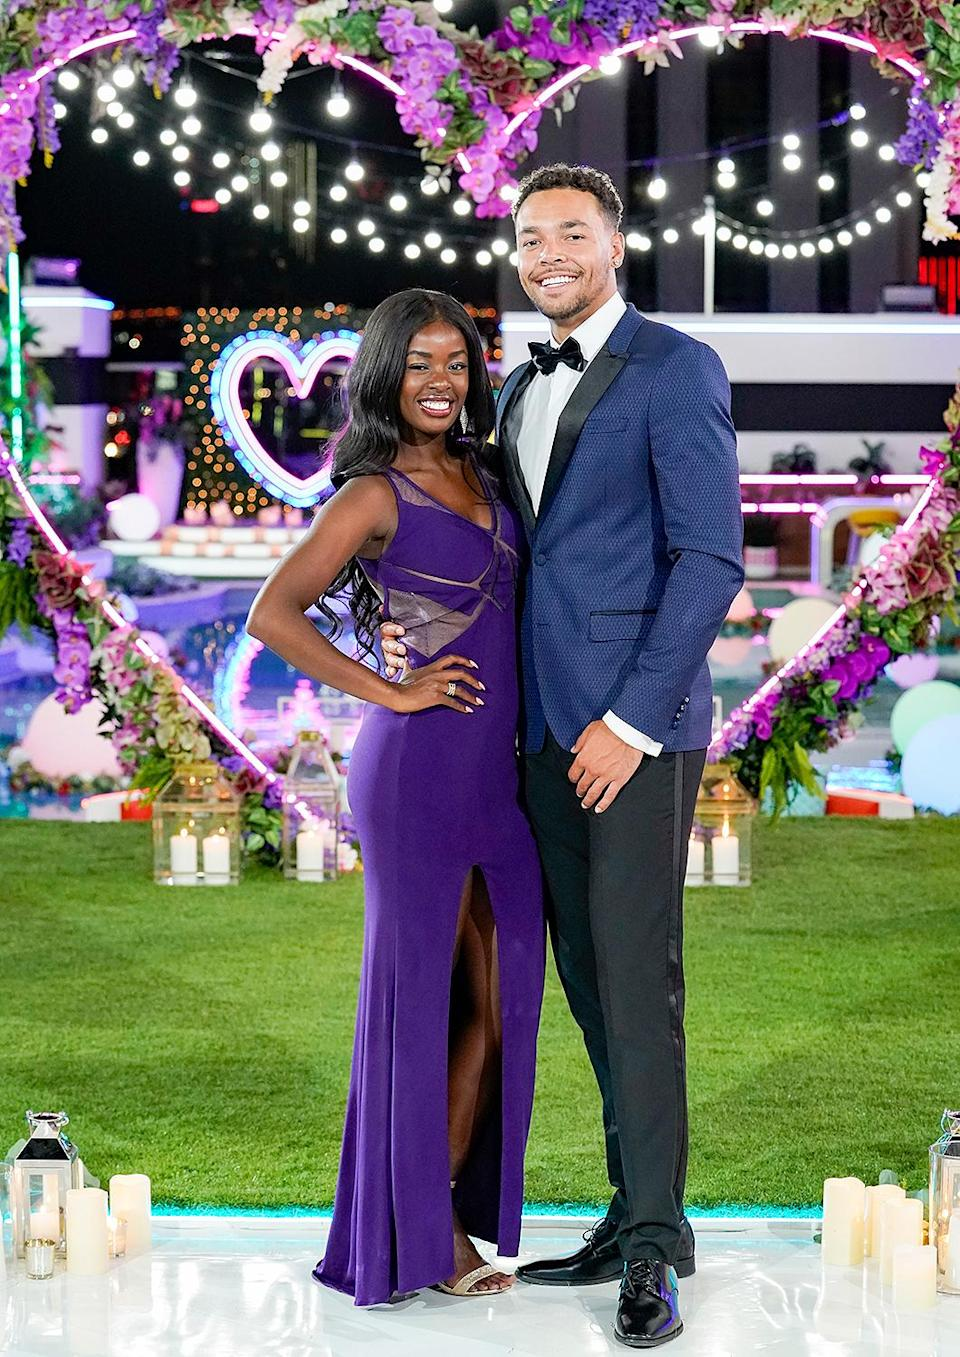 """<p>The <em>Love Island</em> fan favorites and season 2 winners <a href=""""https://people.com/tv/love-island-justine-ndiba-caleb-corprew-split/"""" rel=""""nofollow noopener"""" target=""""_blank"""" data-ylk=""""slk:split."""" class=""""link rapid-noclick-resp"""">split.</a></p> <p>Ndiba, 27, and Corprew, 24, were the <a href=""""https://people.com/tv/love-island-stars-justine-caleb-talk-surreal-experience-first-black-couple-to-win/"""" rel=""""nofollow noopener"""" target=""""_blank"""" data-ylk=""""slk:first Black couple to win"""" class=""""link rapid-noclick-resp"""">first Black couple to win</a> in the franchise's history. News of their split came nearly four months after their win was revealed.</p> <p>""""It's truly a strange feeling to be typing this out but I understand my reality is now having to share some aspects of my life with you all regardless of how private I'd like to remain at times,"""" Justine <a href=""""https://www.instagram.com/p/CKIiJ4Vhryf/?utm_source=ig_embed"""" rel=""""nofollow noopener"""" target=""""_blank"""" data-ylk=""""slk:wrote"""" class=""""link rapid-noclick-resp"""">wrote</a> in a statement posted on Instagram, in which she explained, """"Caleb and I are no longer together."""" </p> <p>Caleb spoke out in a statement as well, acknowledging their split. """"As many of you already know, Justine and I are no longer together. I wish her the absolute best and much continued success as God blesses her with new opportunities and adventures,"""" he wrote, going on to ask for privacy at this time. </p>"""